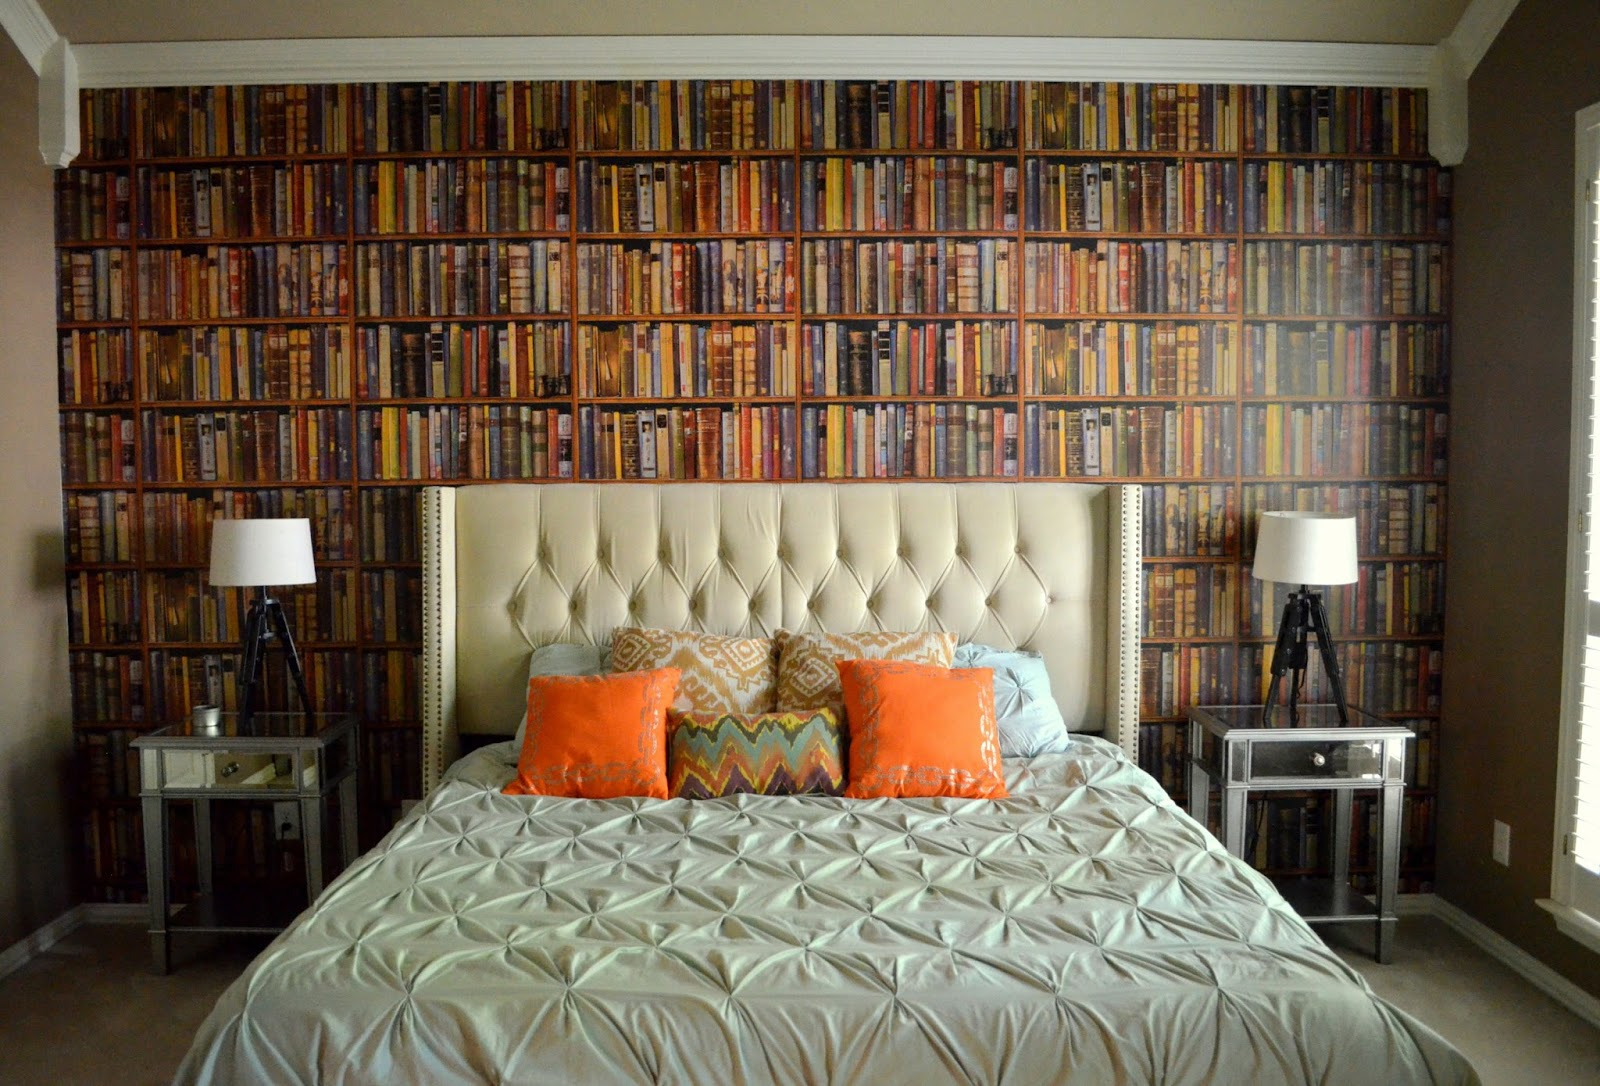 Amazing photo of  Wallpapers & Fabrics on Pinterest Museum Collection Wallpapers and with #C0440B color and 1600x1086 pixels